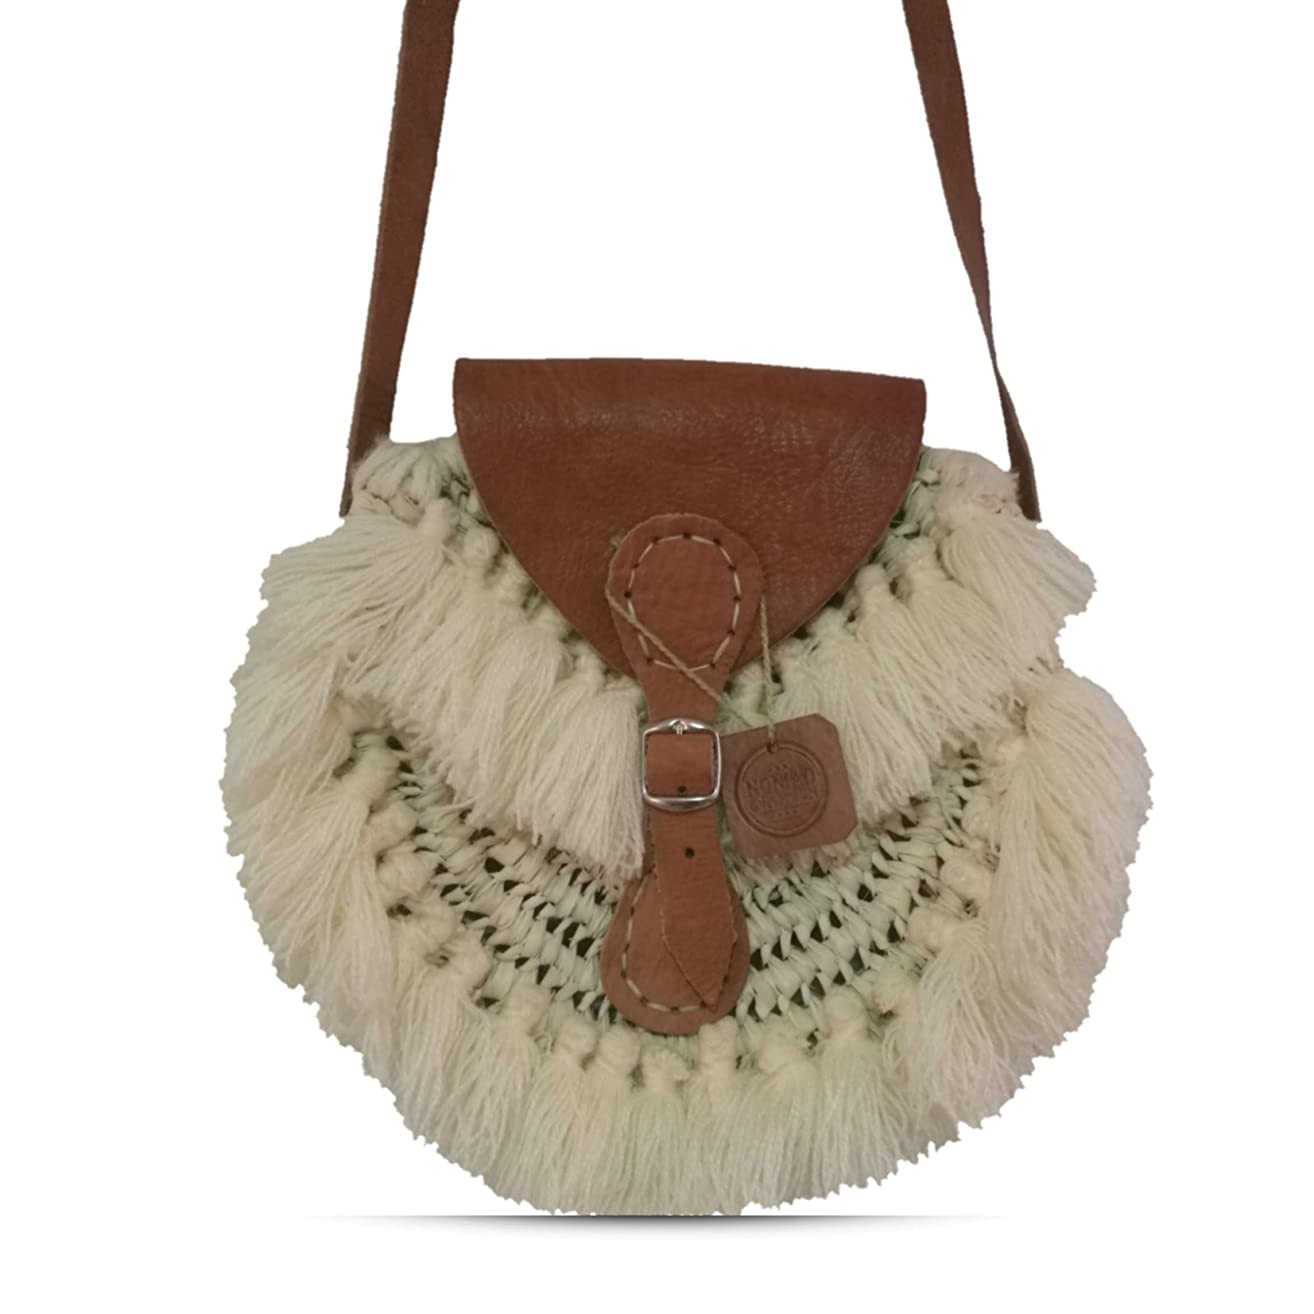 Moroccan Straw Shoulder Tote Handmade Round Bag with Tassels Personnalized